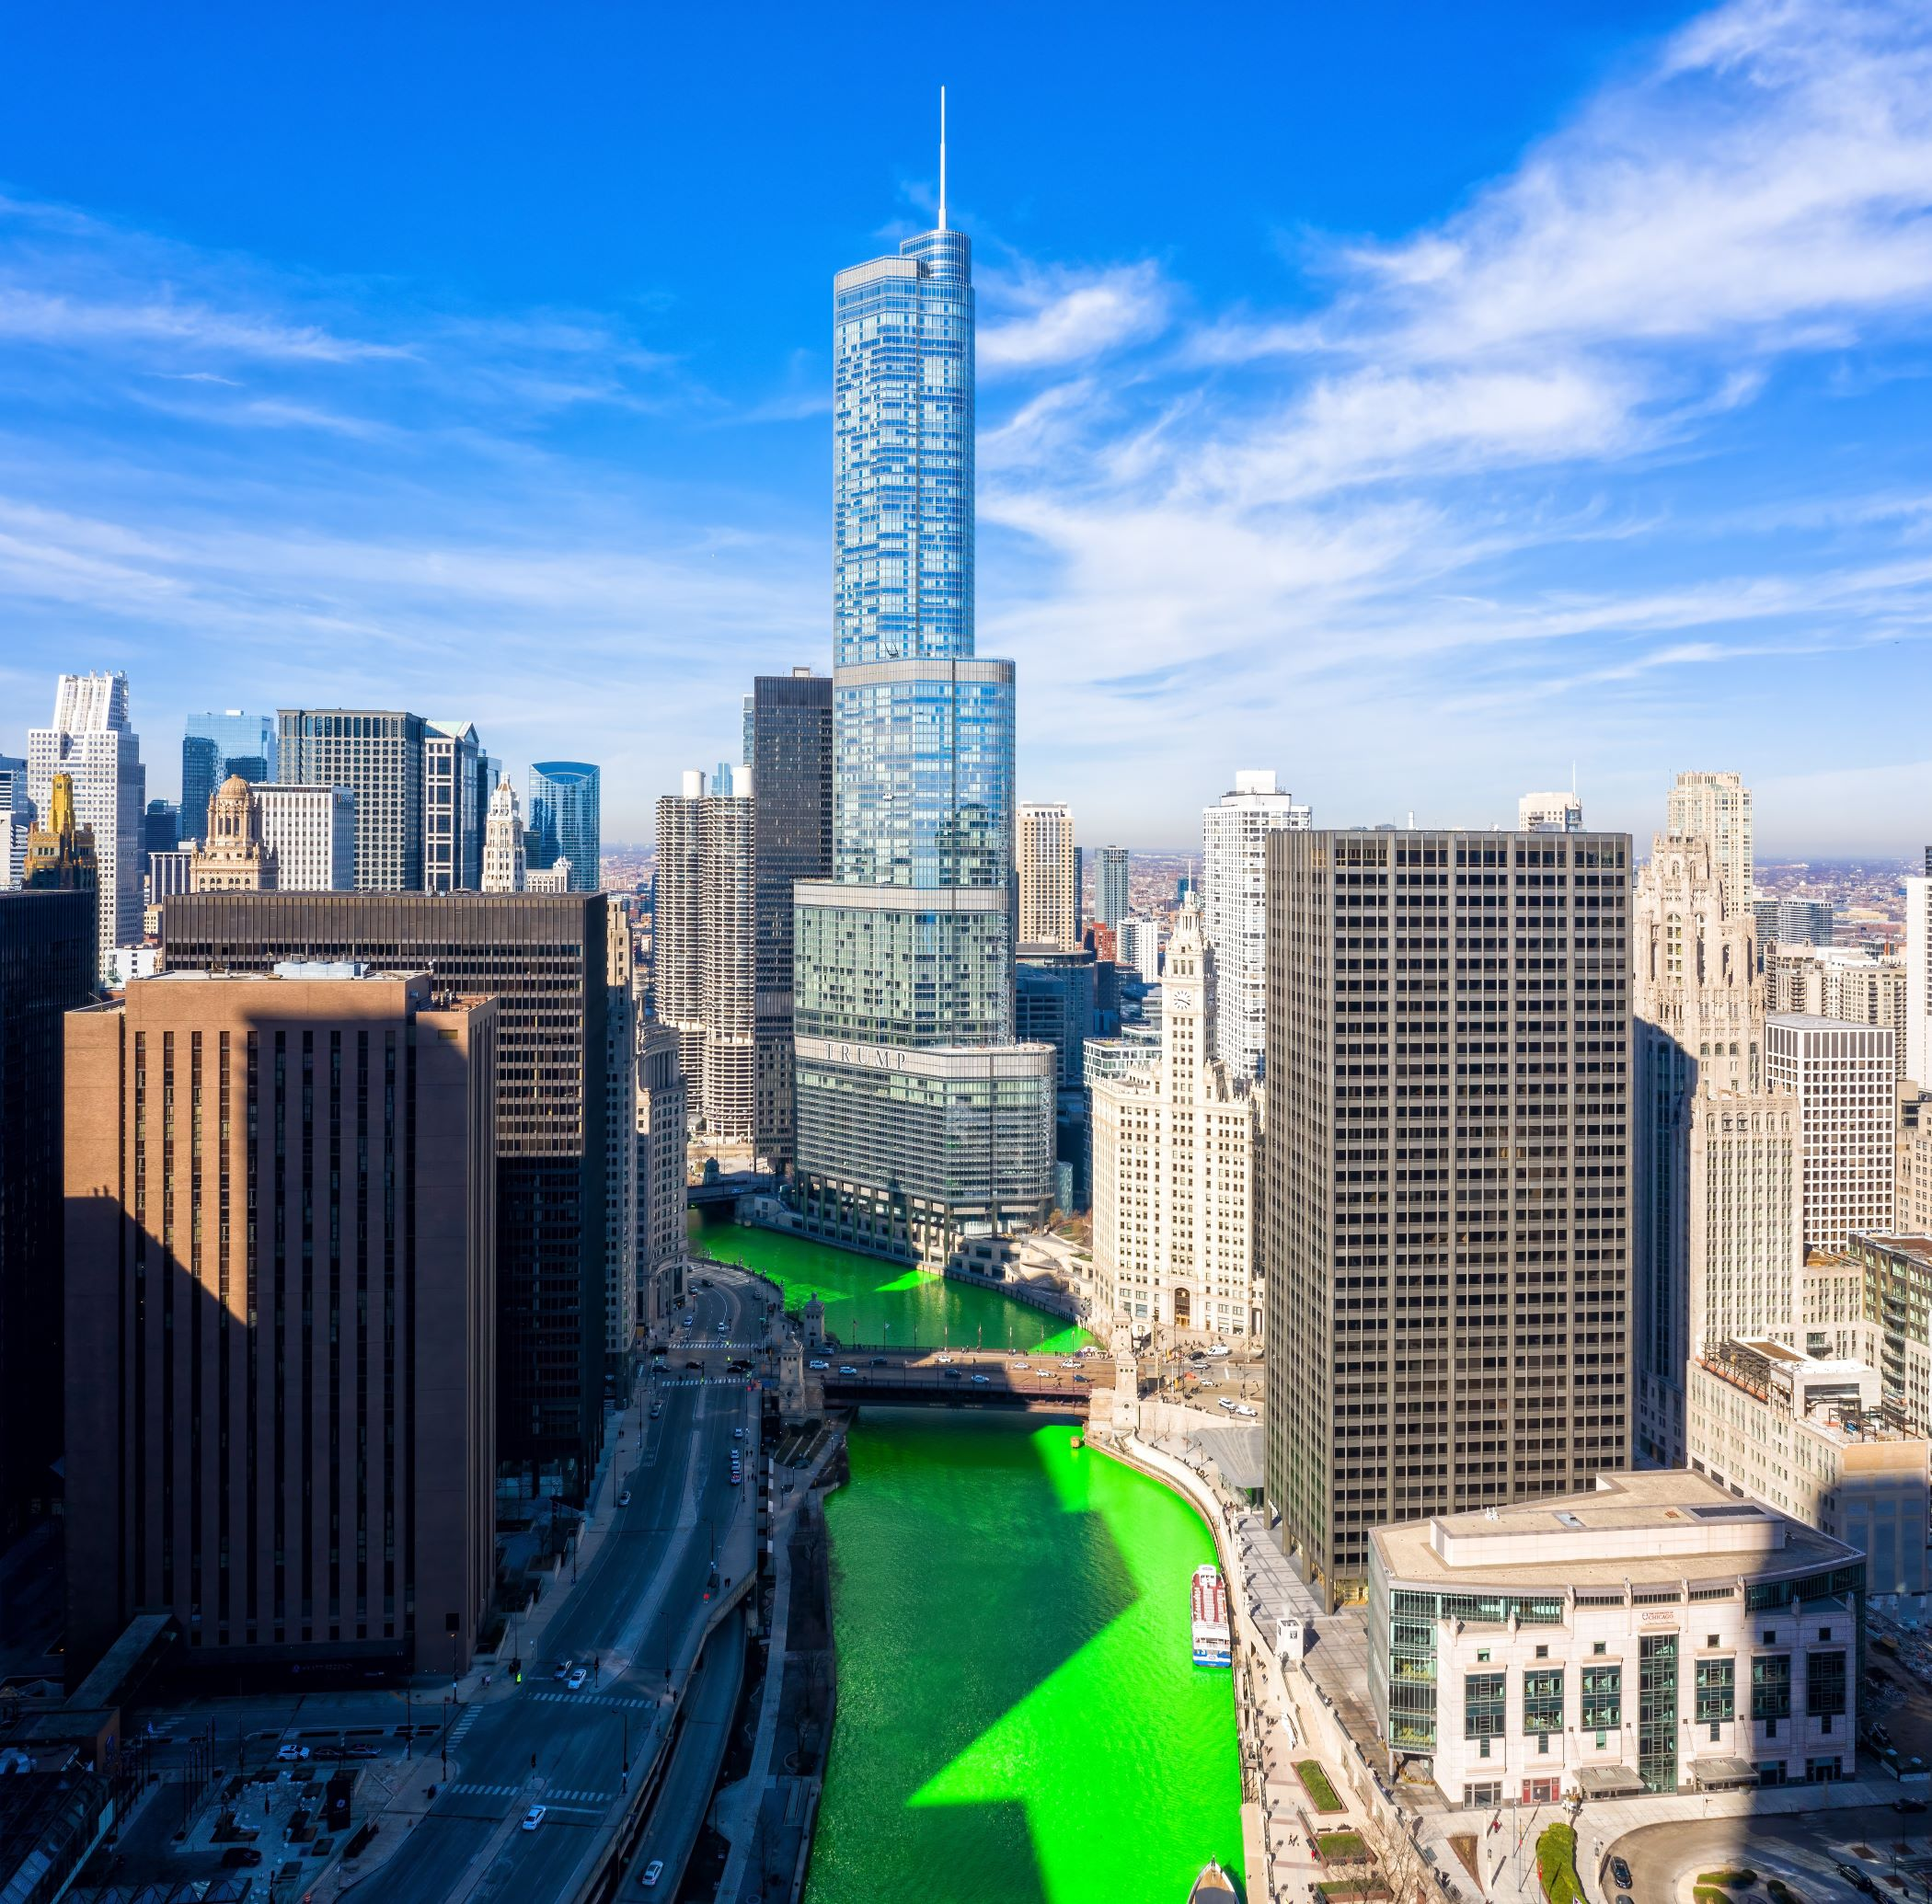 The Chicago River, looking west from Lake Michigan, got the traditional St. Patrick?s Day dye job though much of the city?s other celebrations were canceled because of COVID-19 social-distancing and mask mandates. (Gian Lorenzo Ferretti/CoStar)